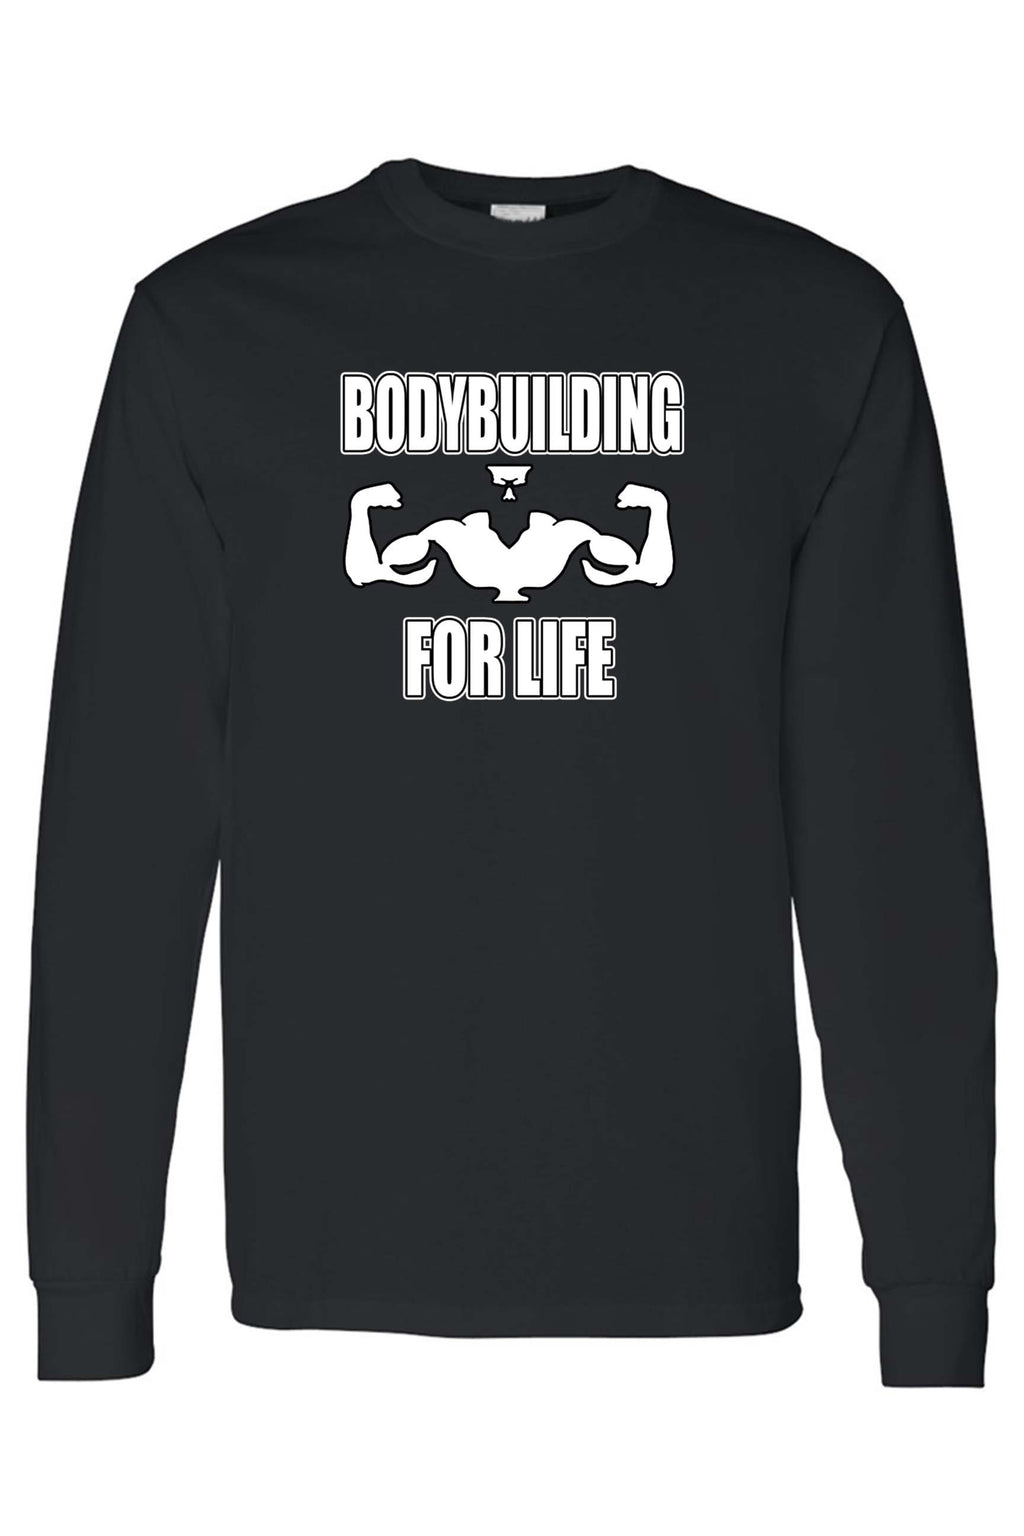 Men's Bodybuilding For Life Workout Fitness Long Sleeve shirt